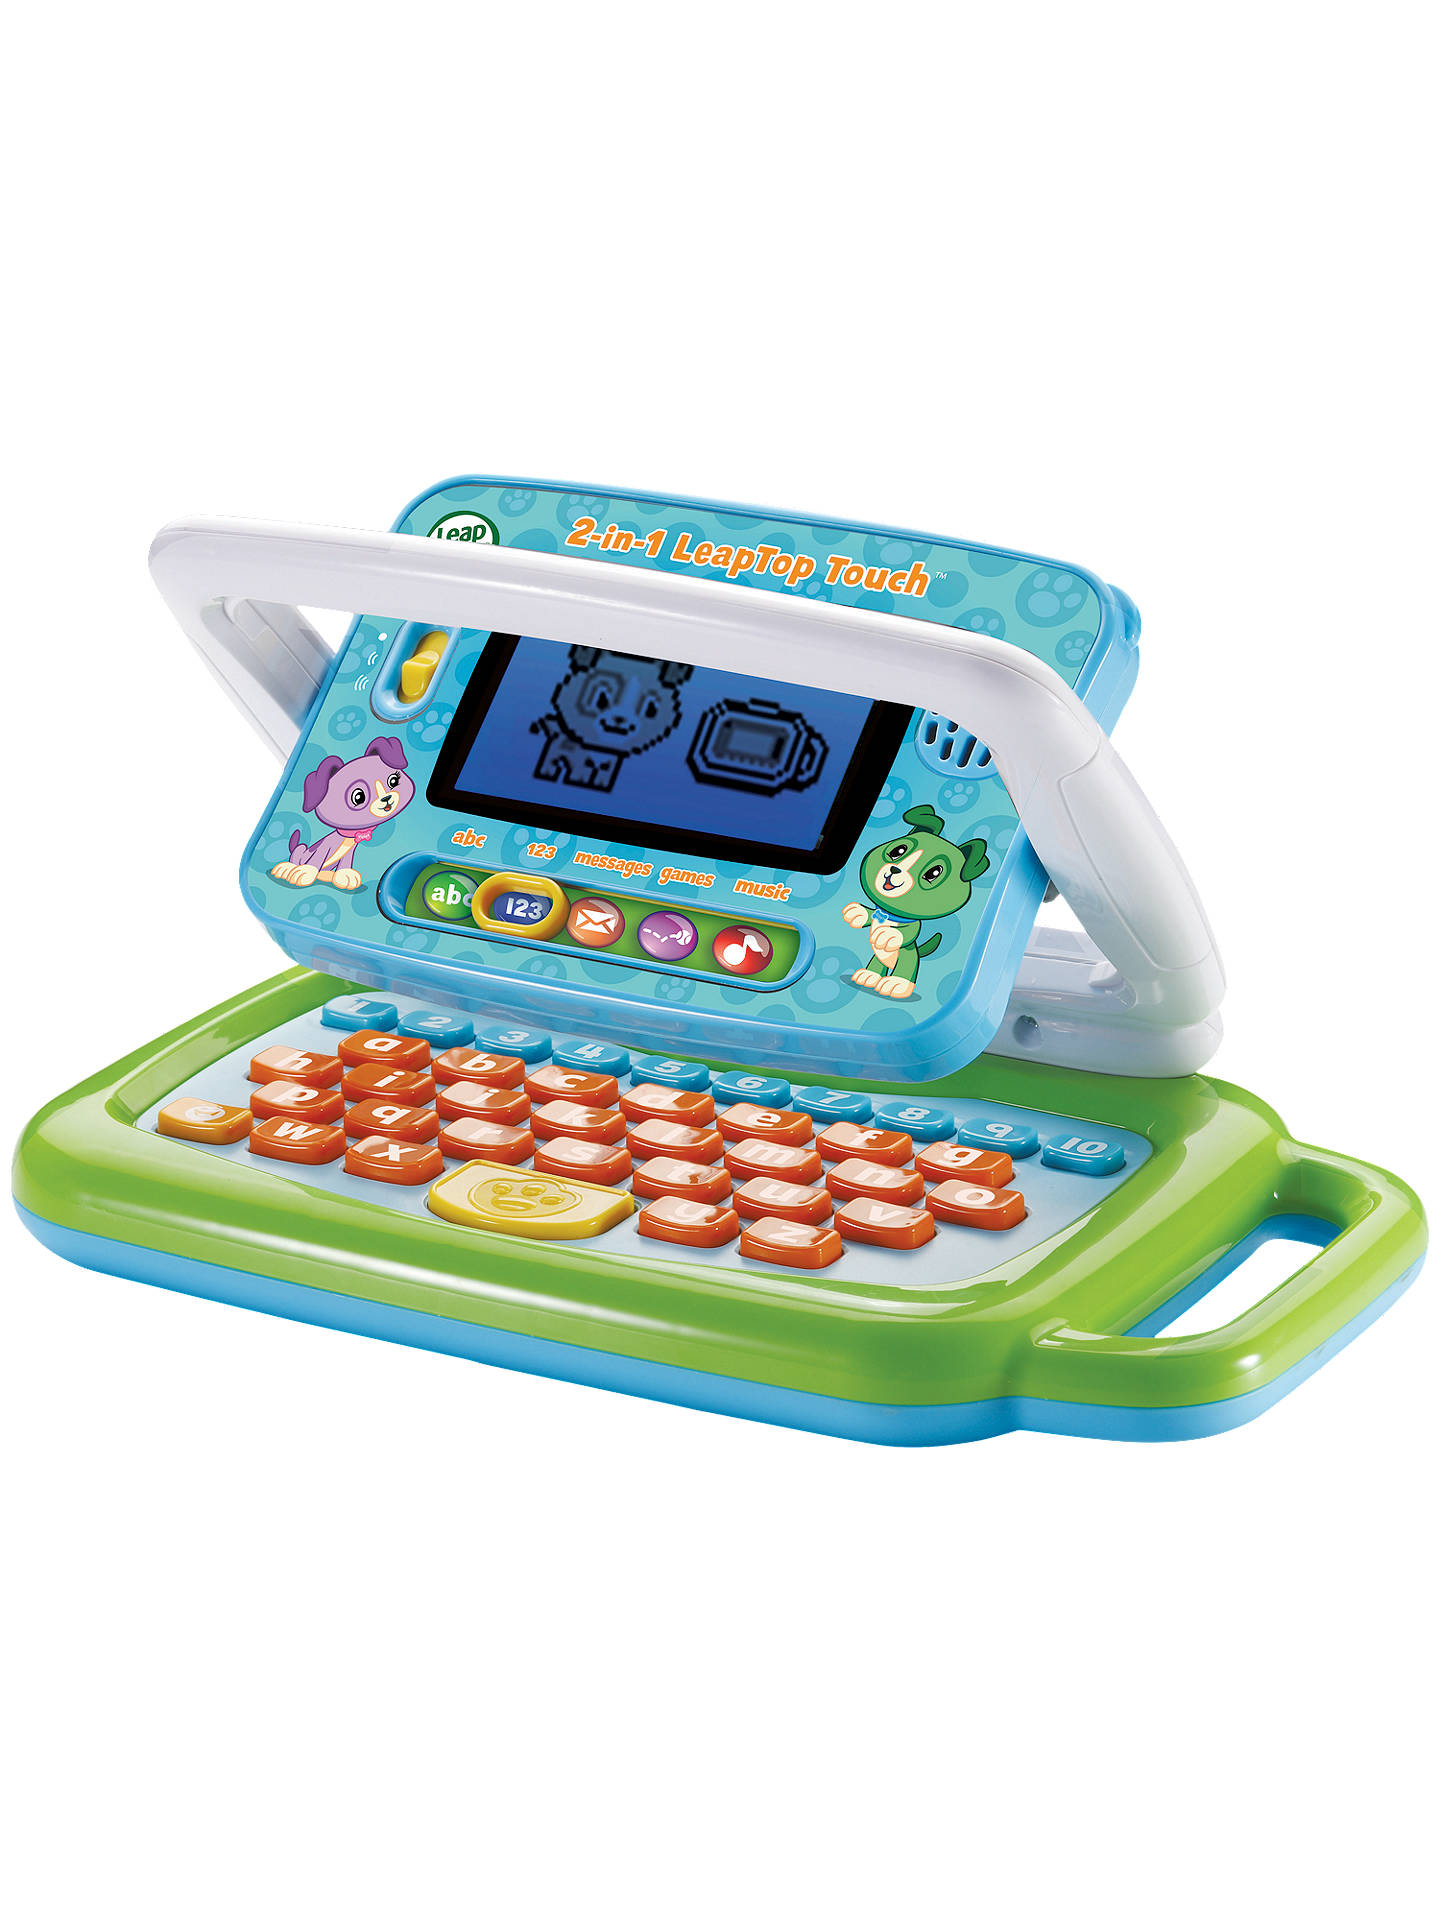 BuyLeapFrog 2 In 1 Leaptop Touch Laptop Green Online At Johnlewis